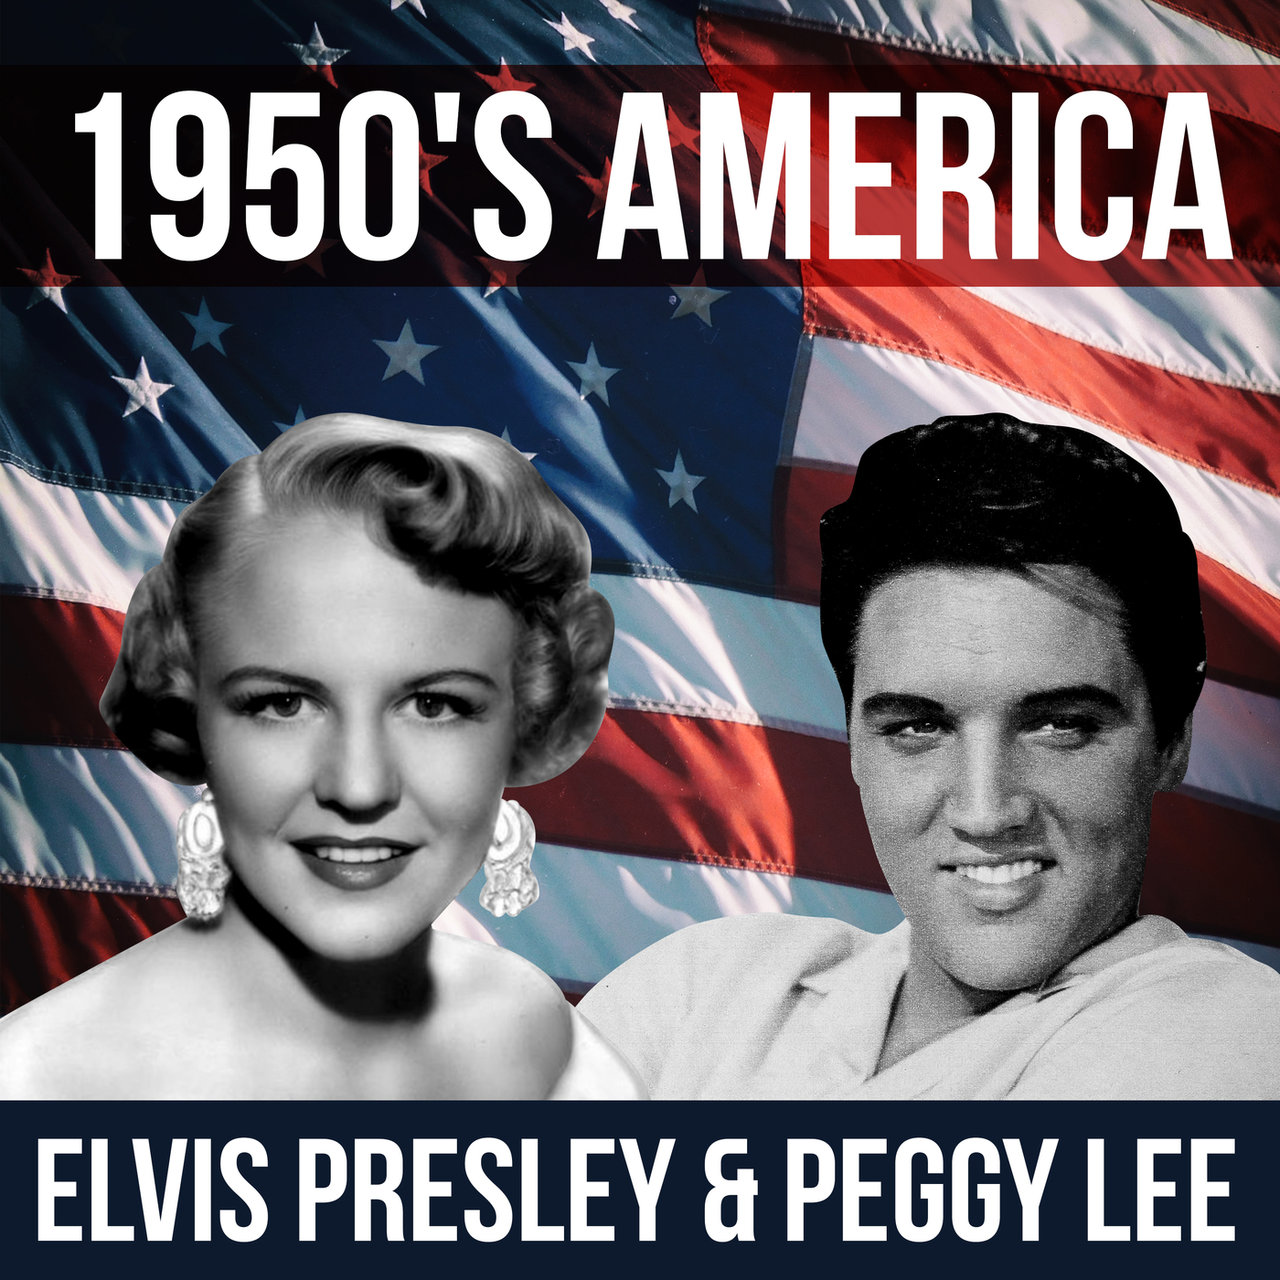 1950's America - Elvis Presley & Peggy Lee